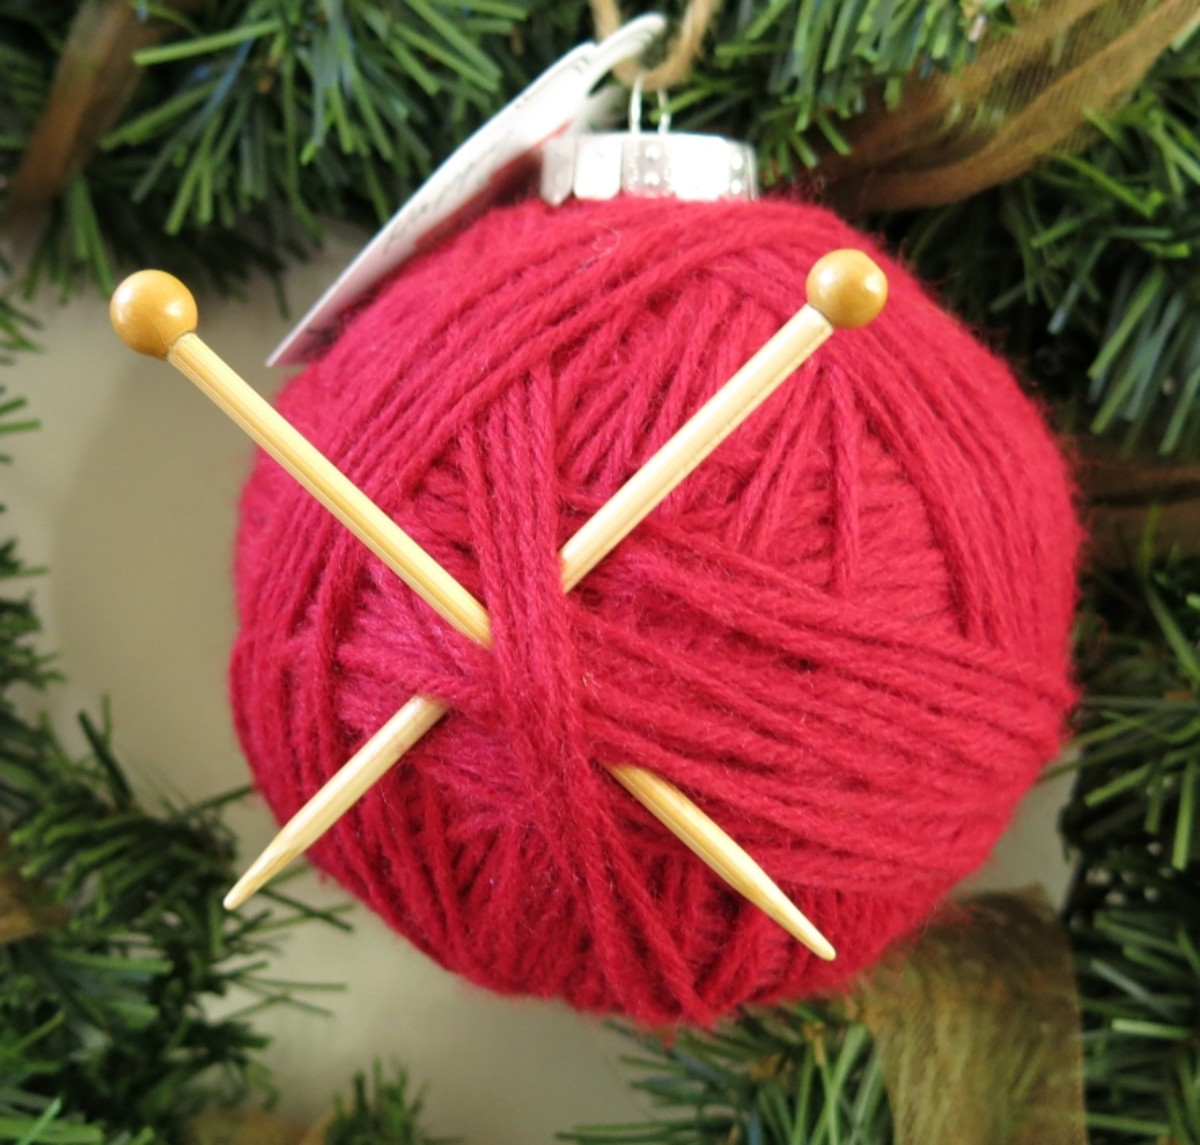 Knitting Needles or Crochet Hook Ornament